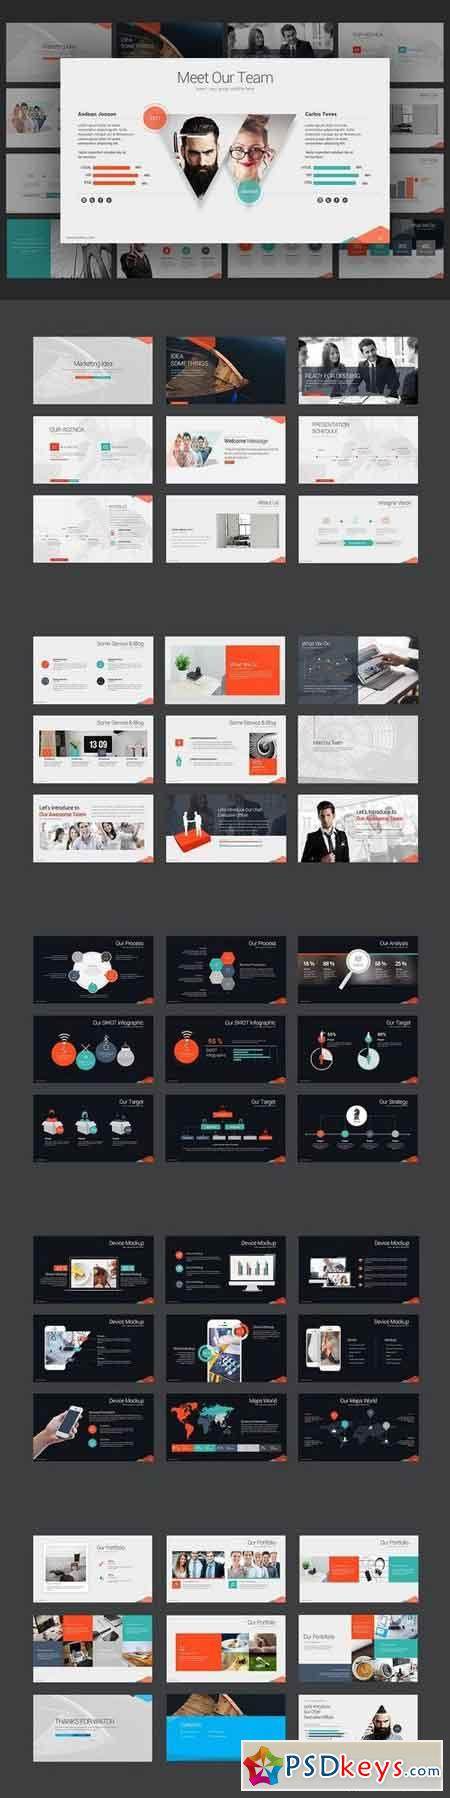 Marketing Idea PowerPoint Template 1378317 » Free Download Photoshop ...